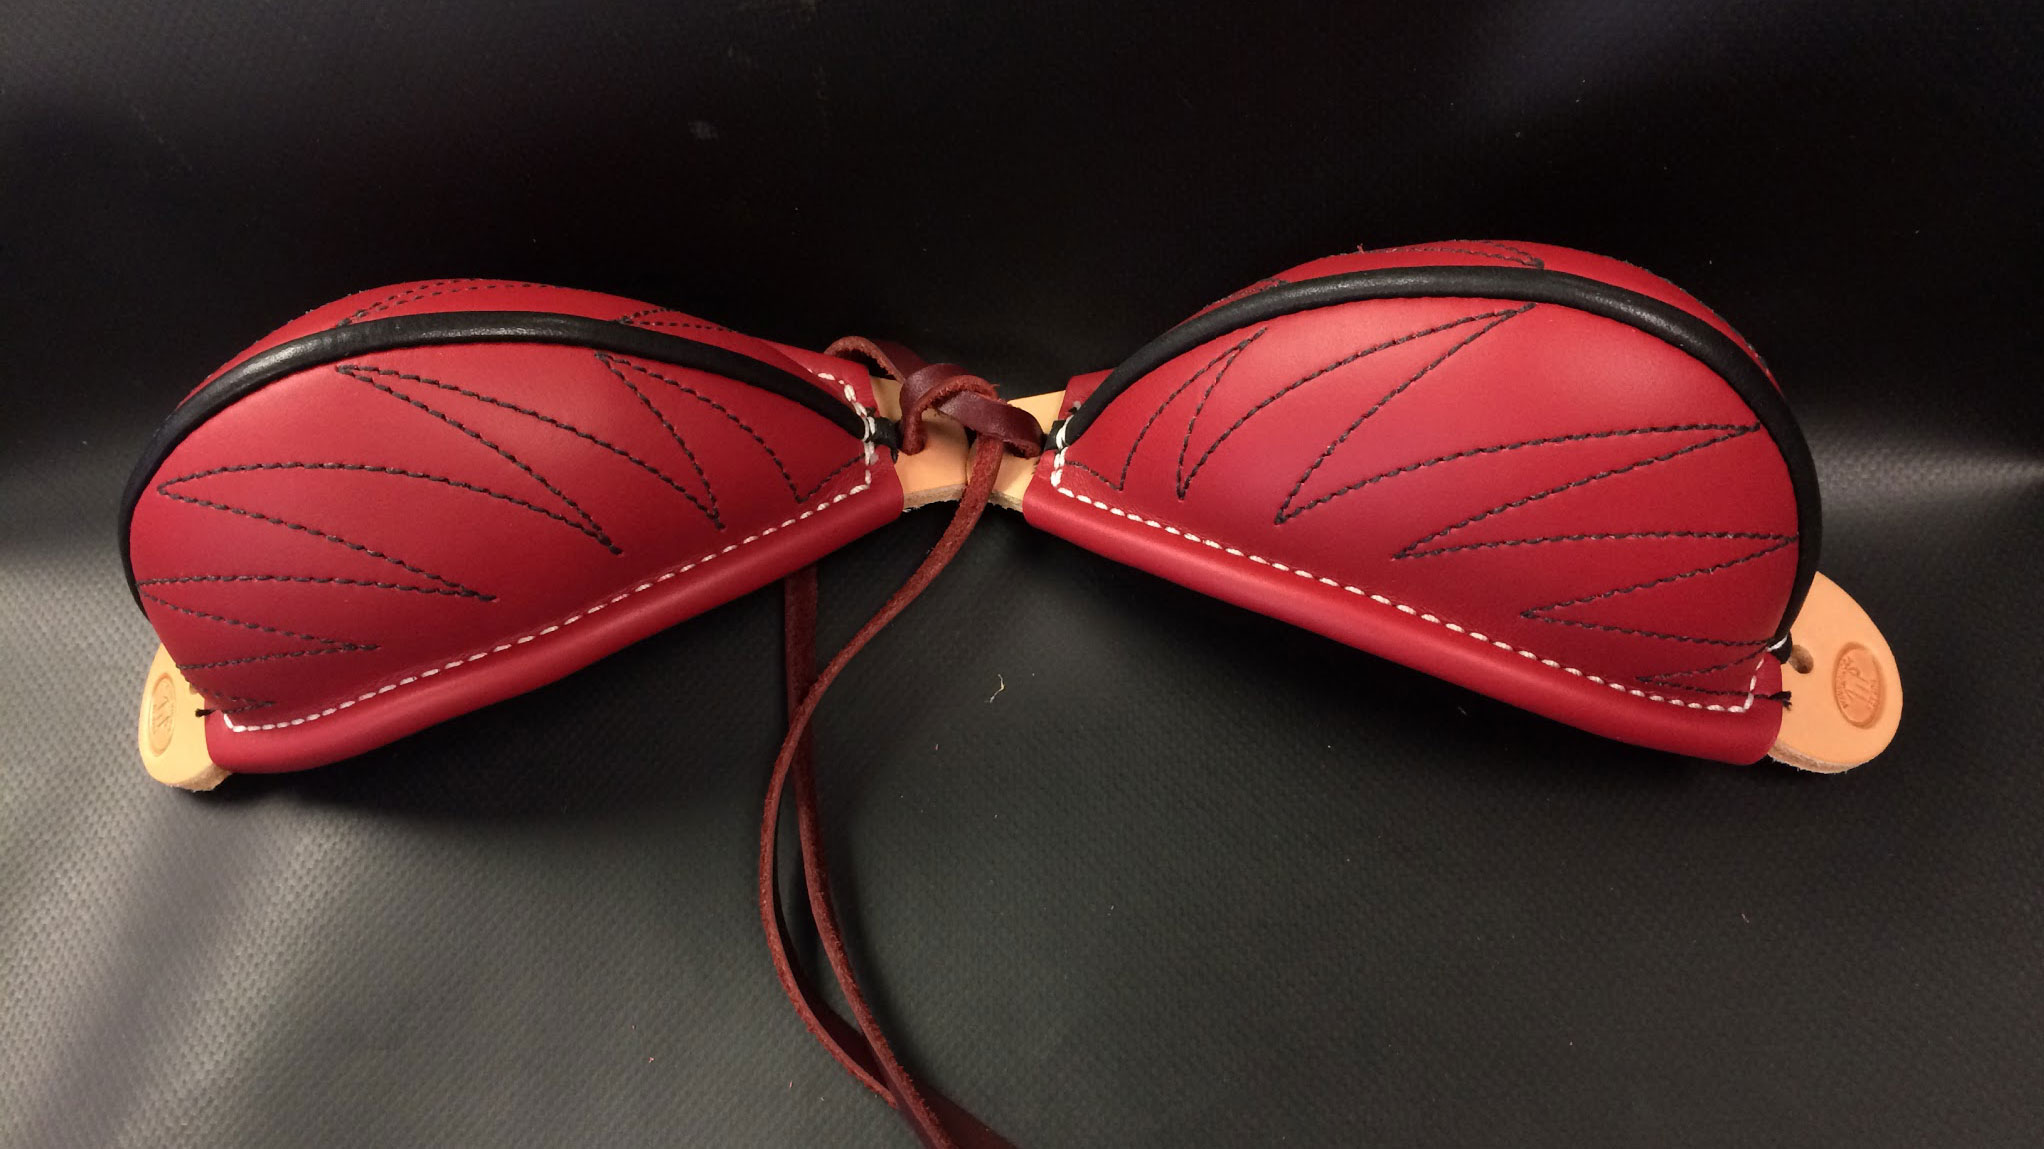 Our Red Bucking Roll matches our Red Horn Wrap and our Red Cantle Bags. We make the best bucking rolls available.